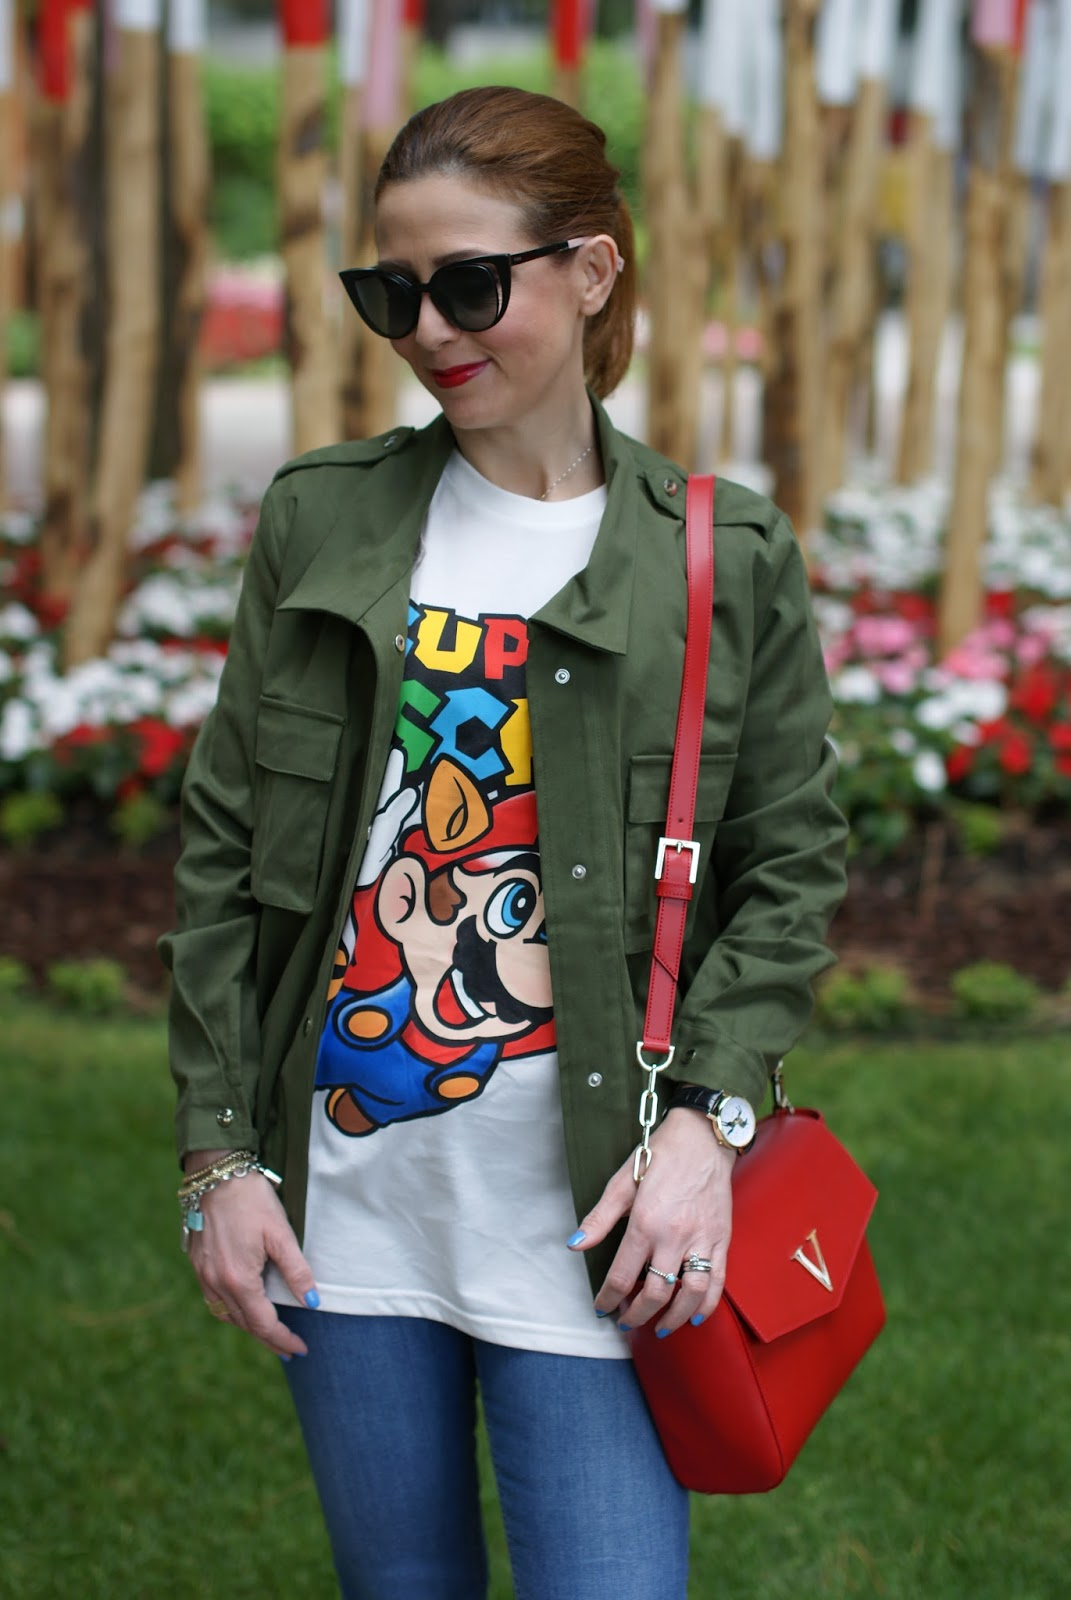 Moschino Super Moschino t-shirt with Tanooki Mario from Super Mario bros, Lookbook Store army green jacket on Fashion and Cookies fashion blog, fashion blogger style